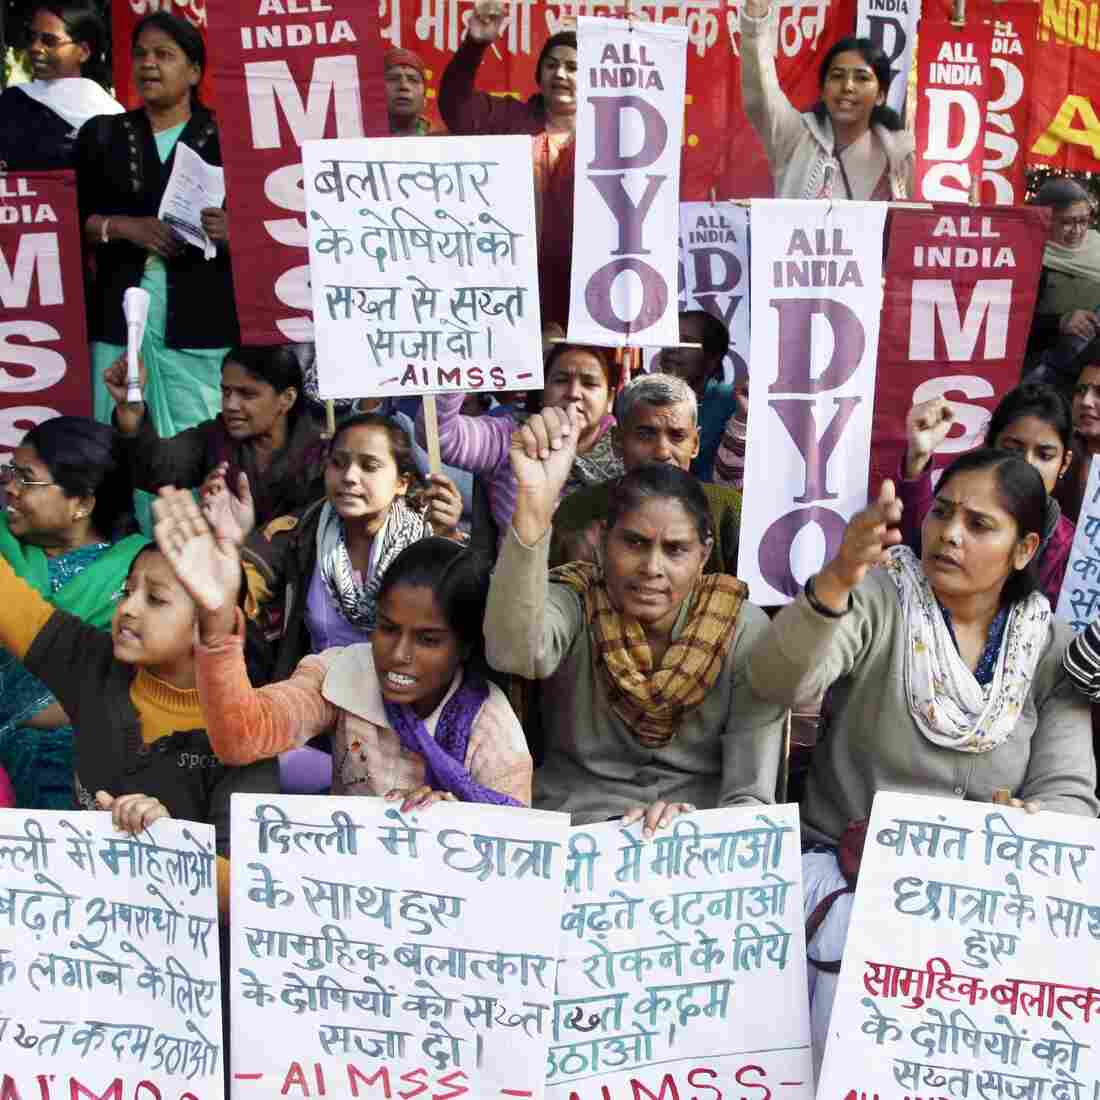 Rape Case In India Provokes Widespread Outrage